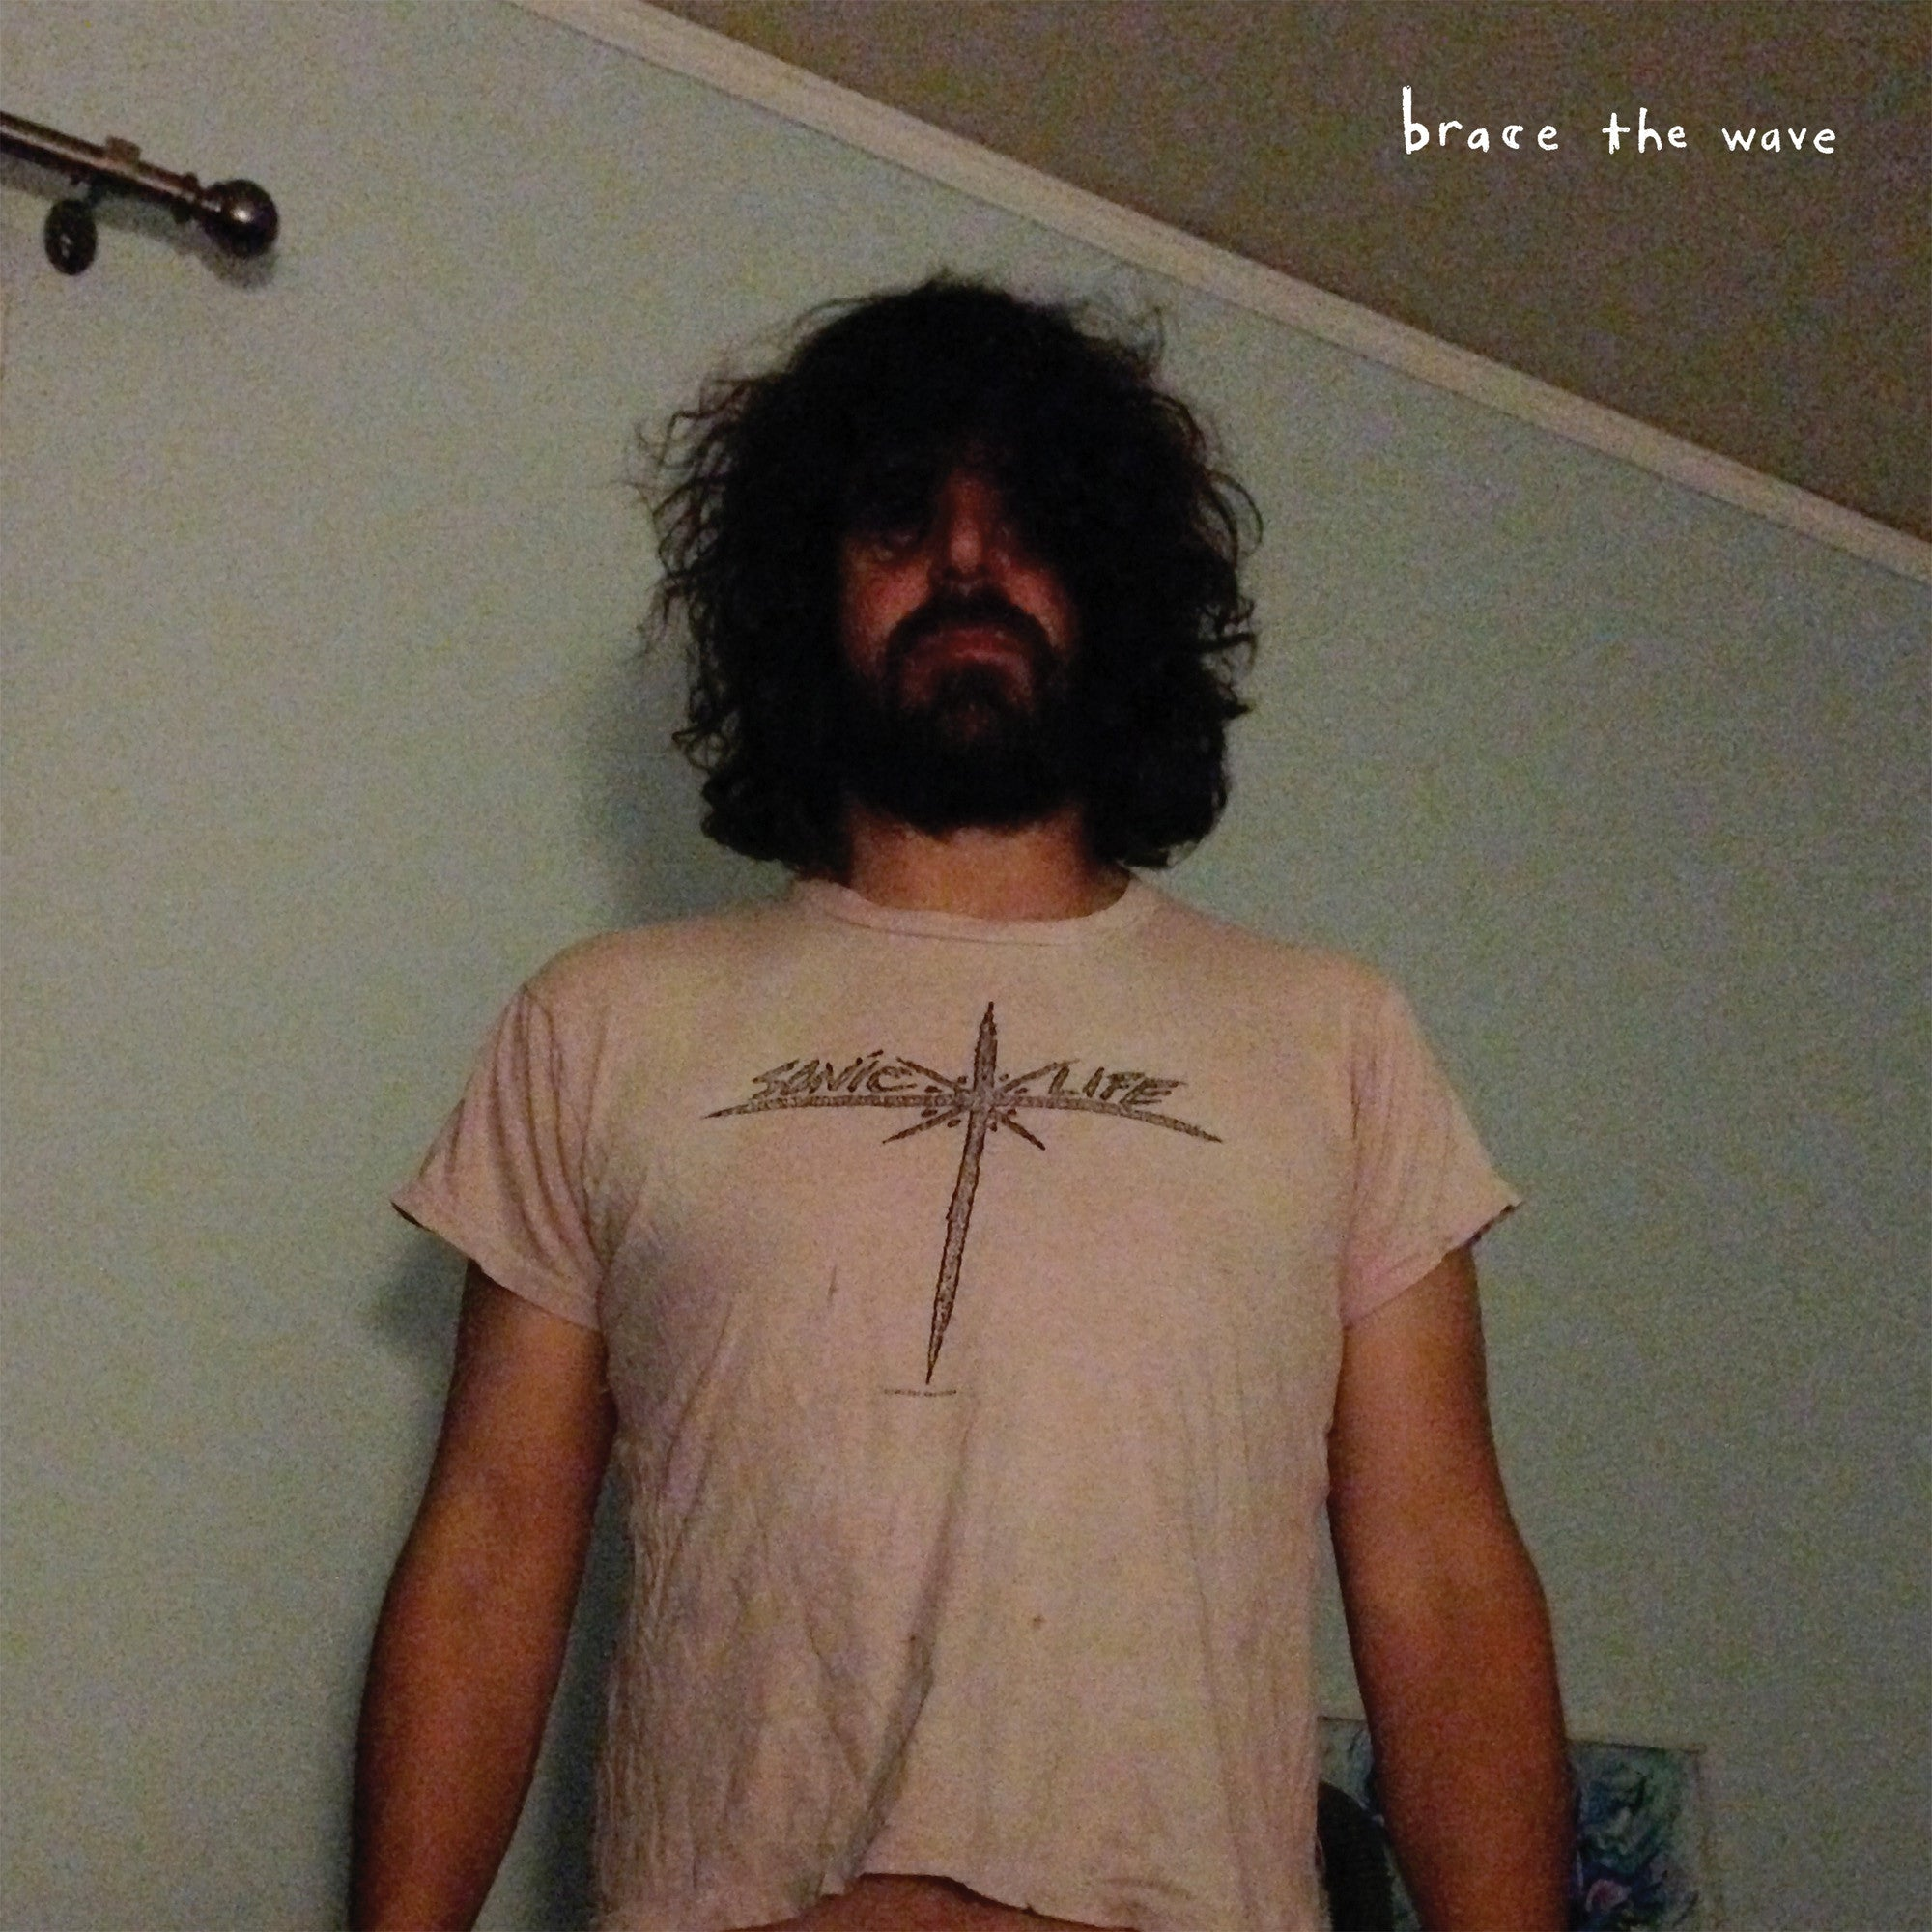 Brace The Wave - Lou Barlow - Joyful Noise Recordings - 1